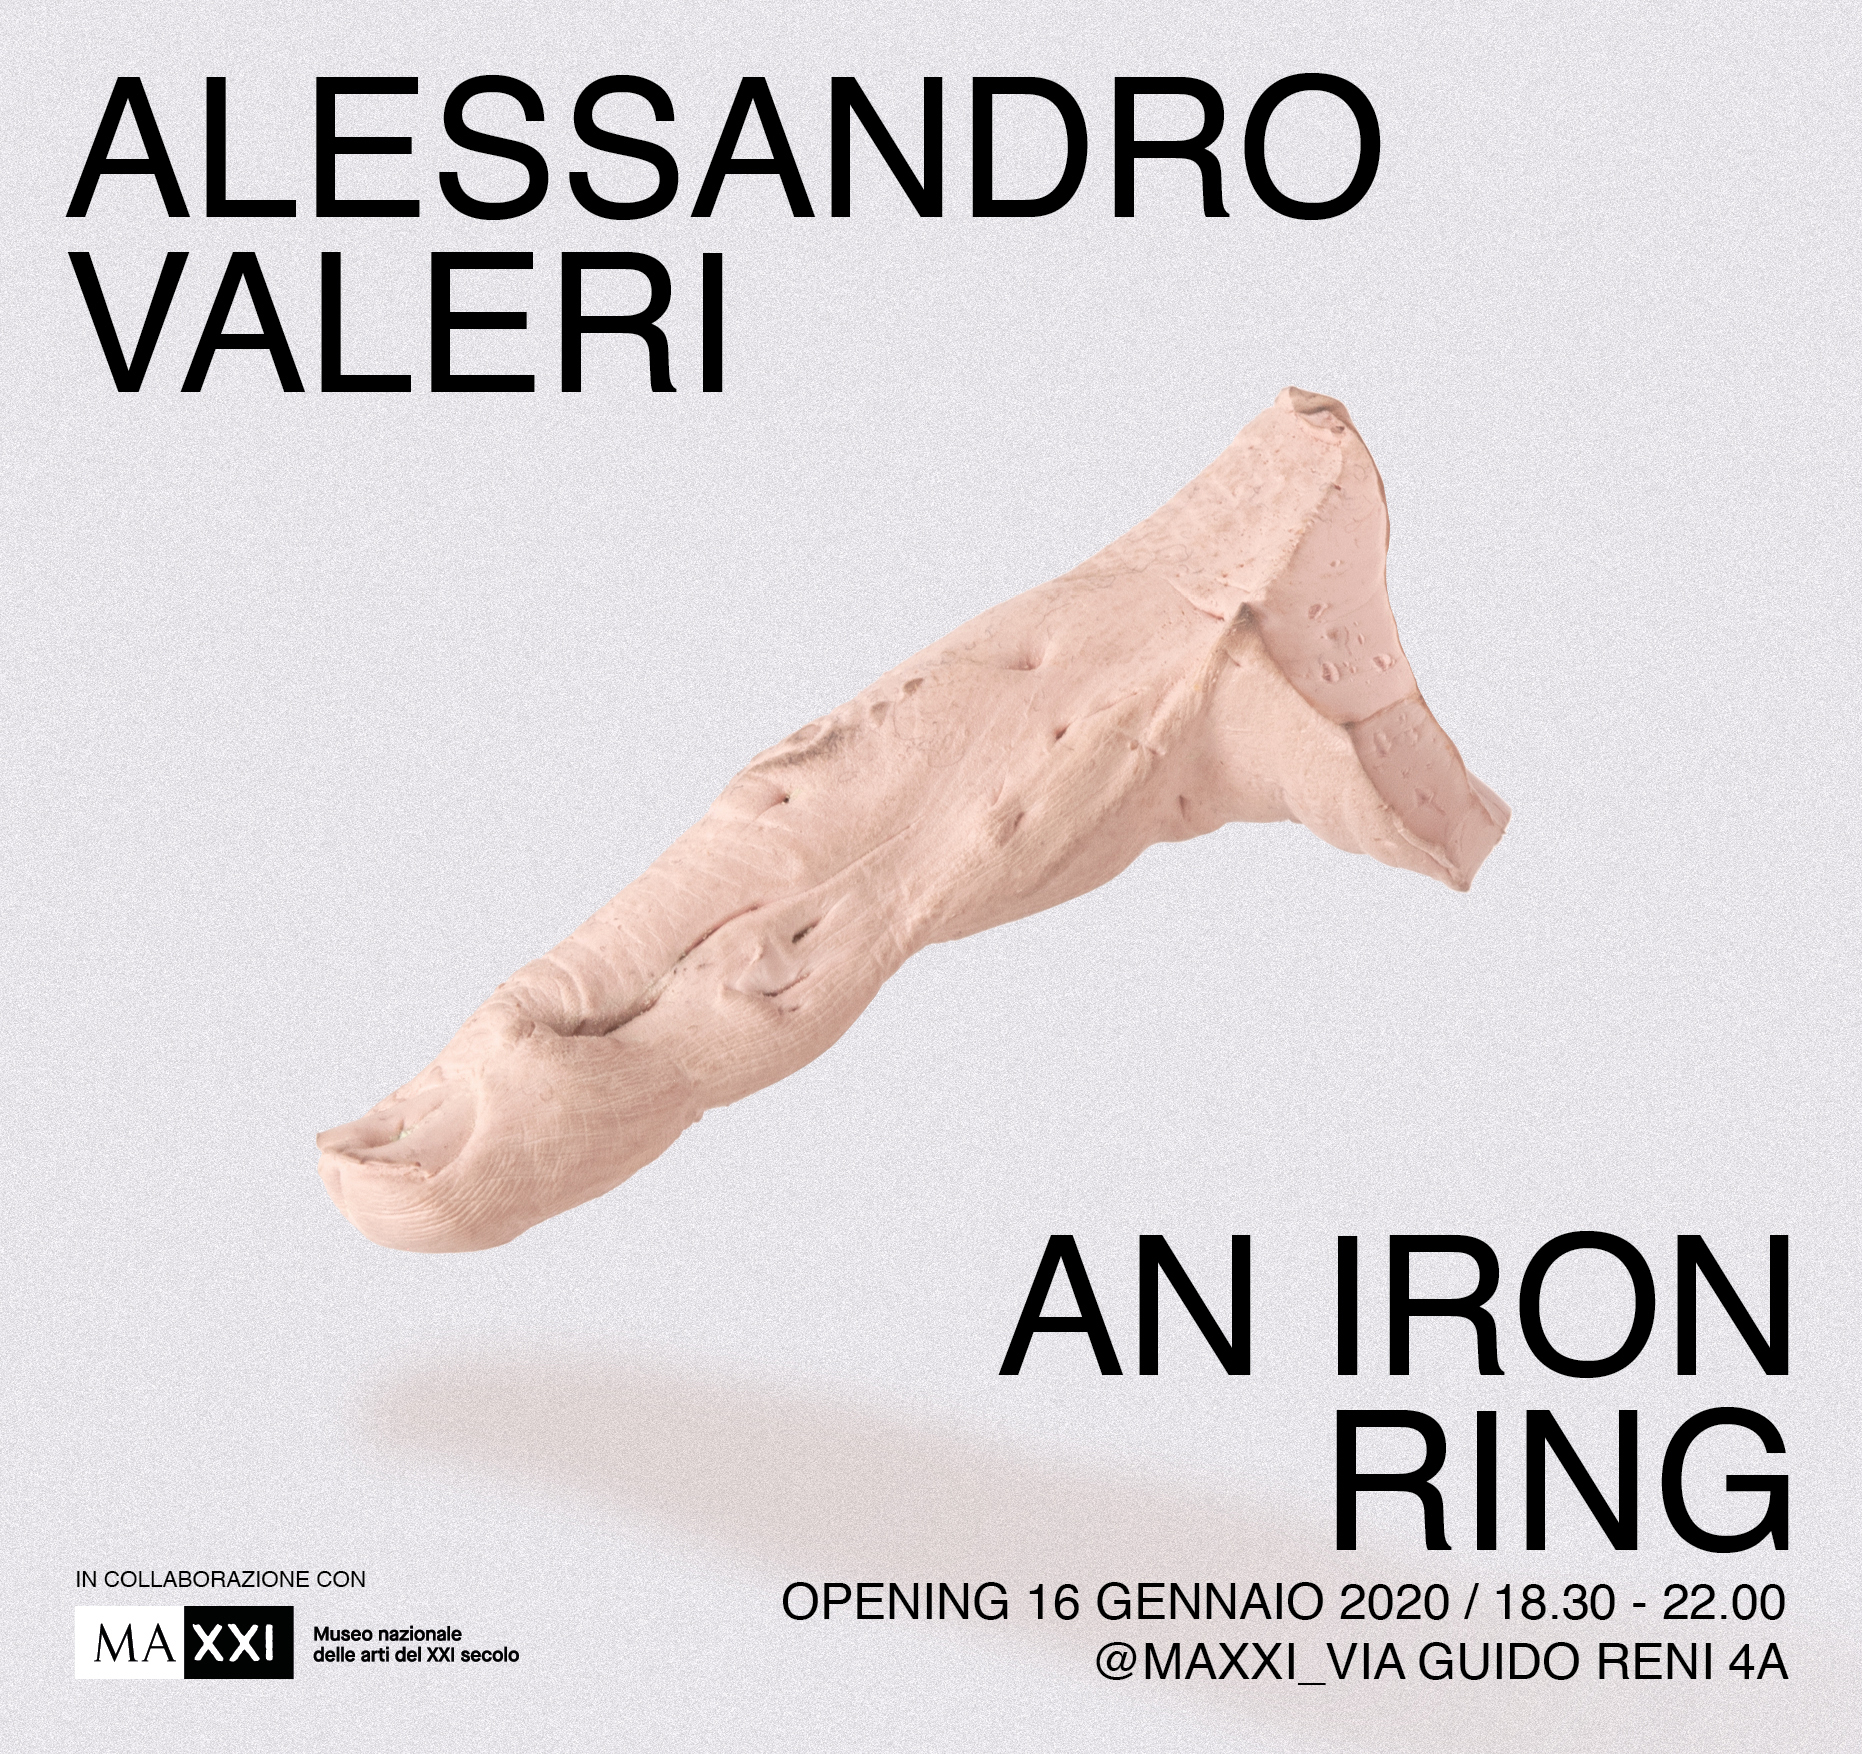 SQUARE_ALESSANDRO VALERI_AN IRON RING_3